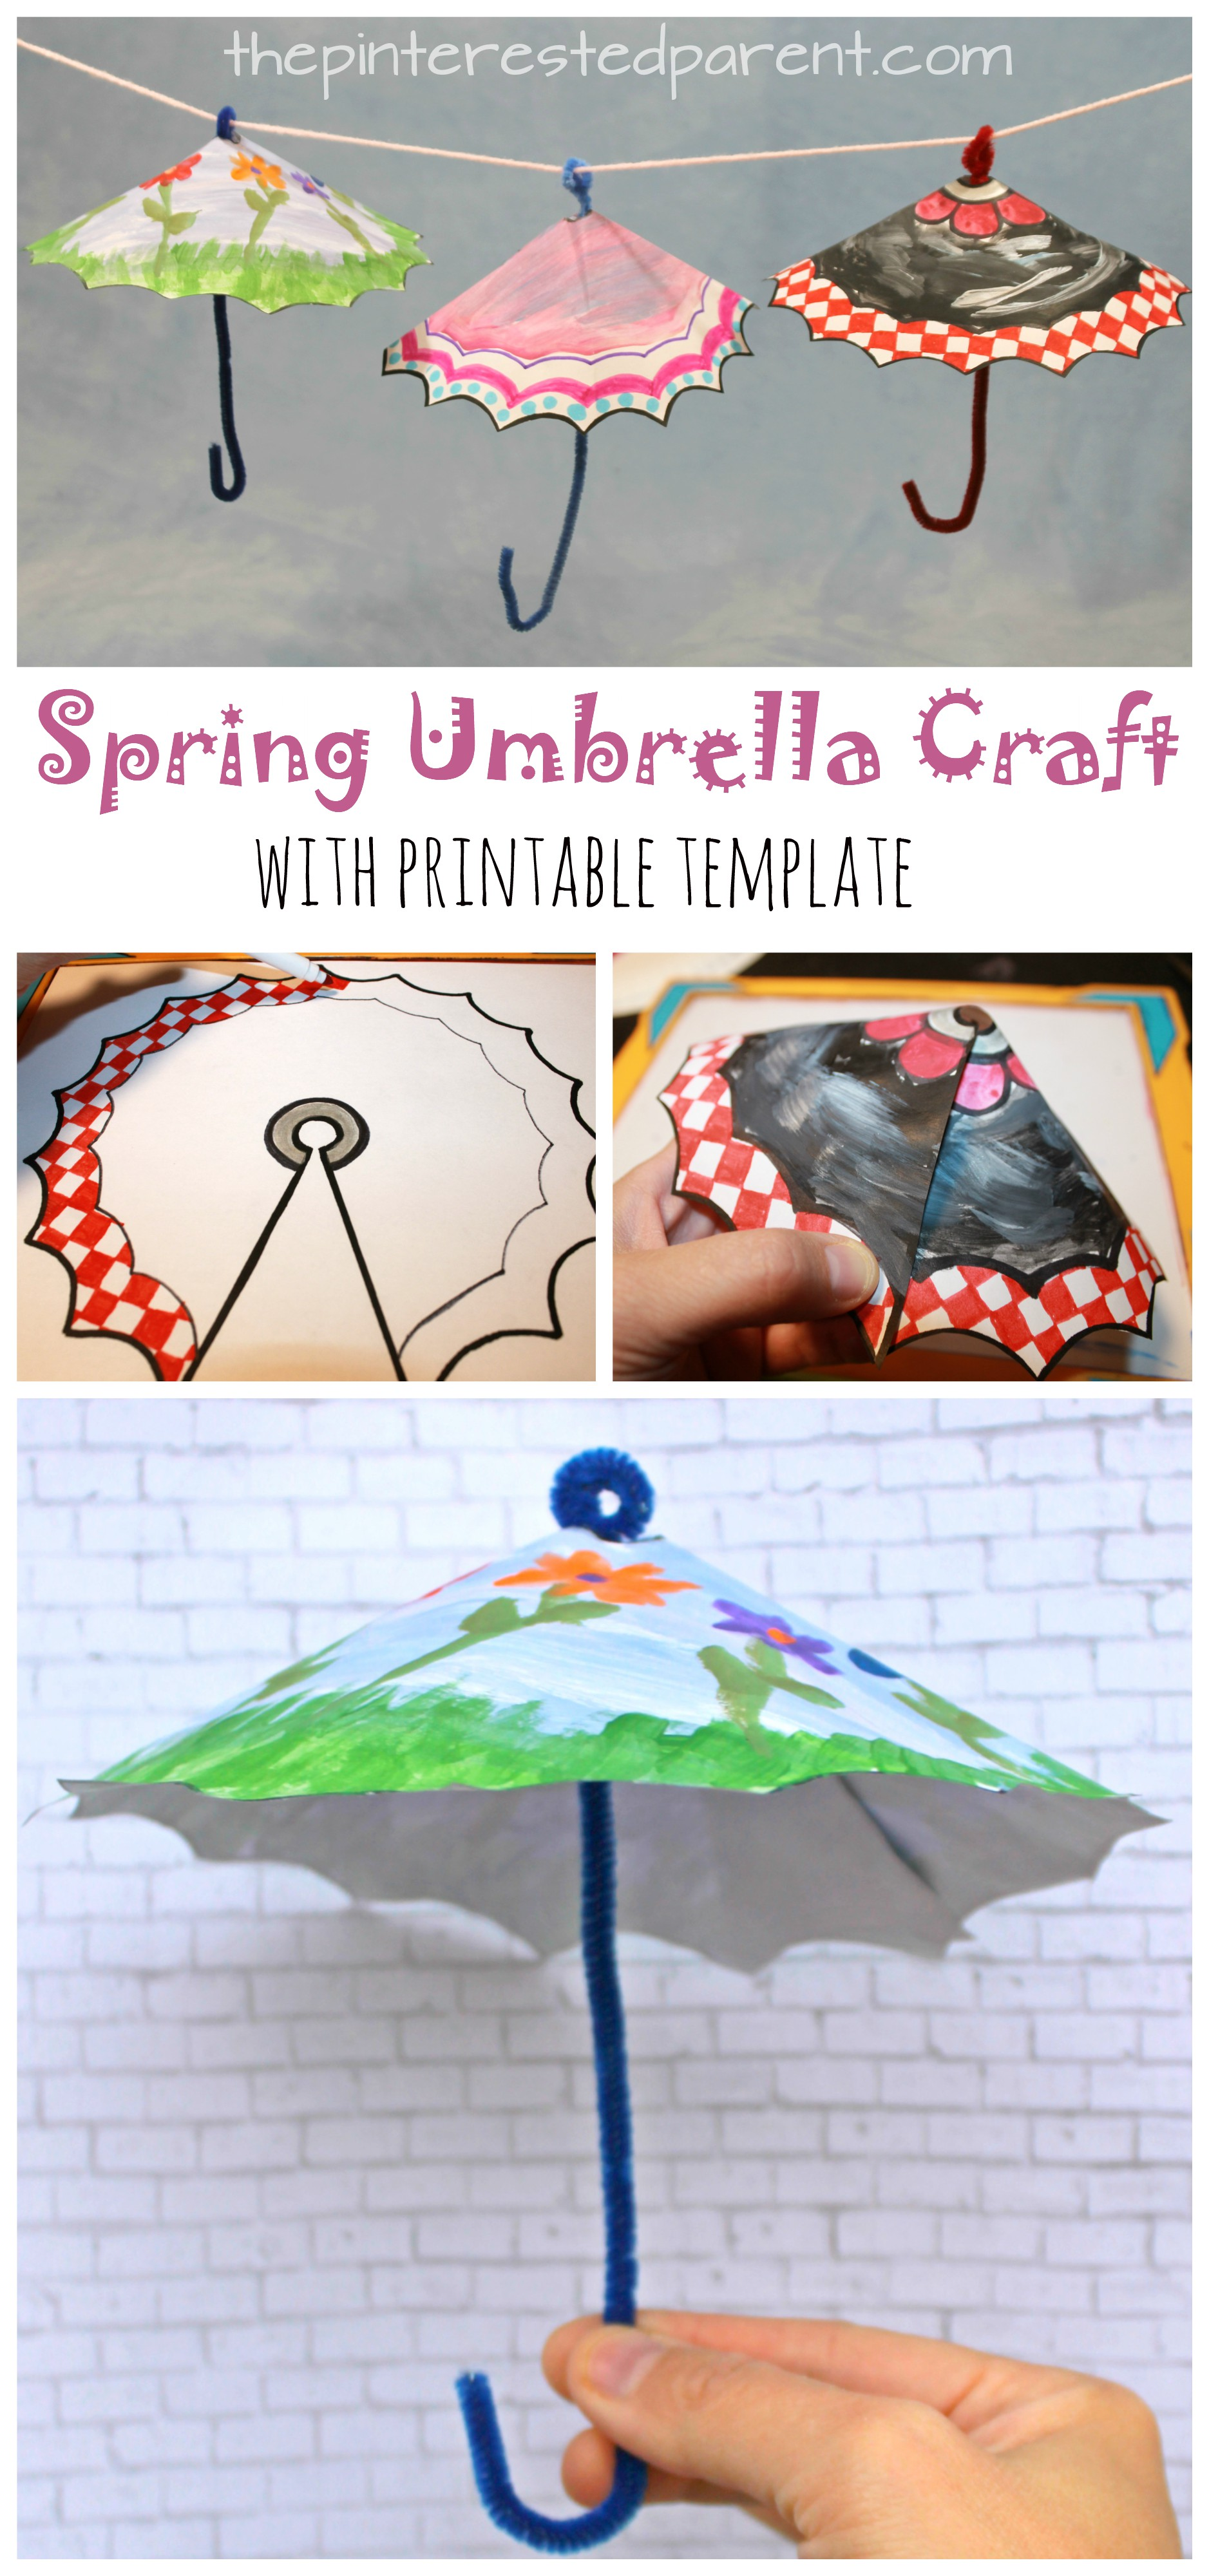 Spring Umbrella Craft With Printable The Pinterested Parent